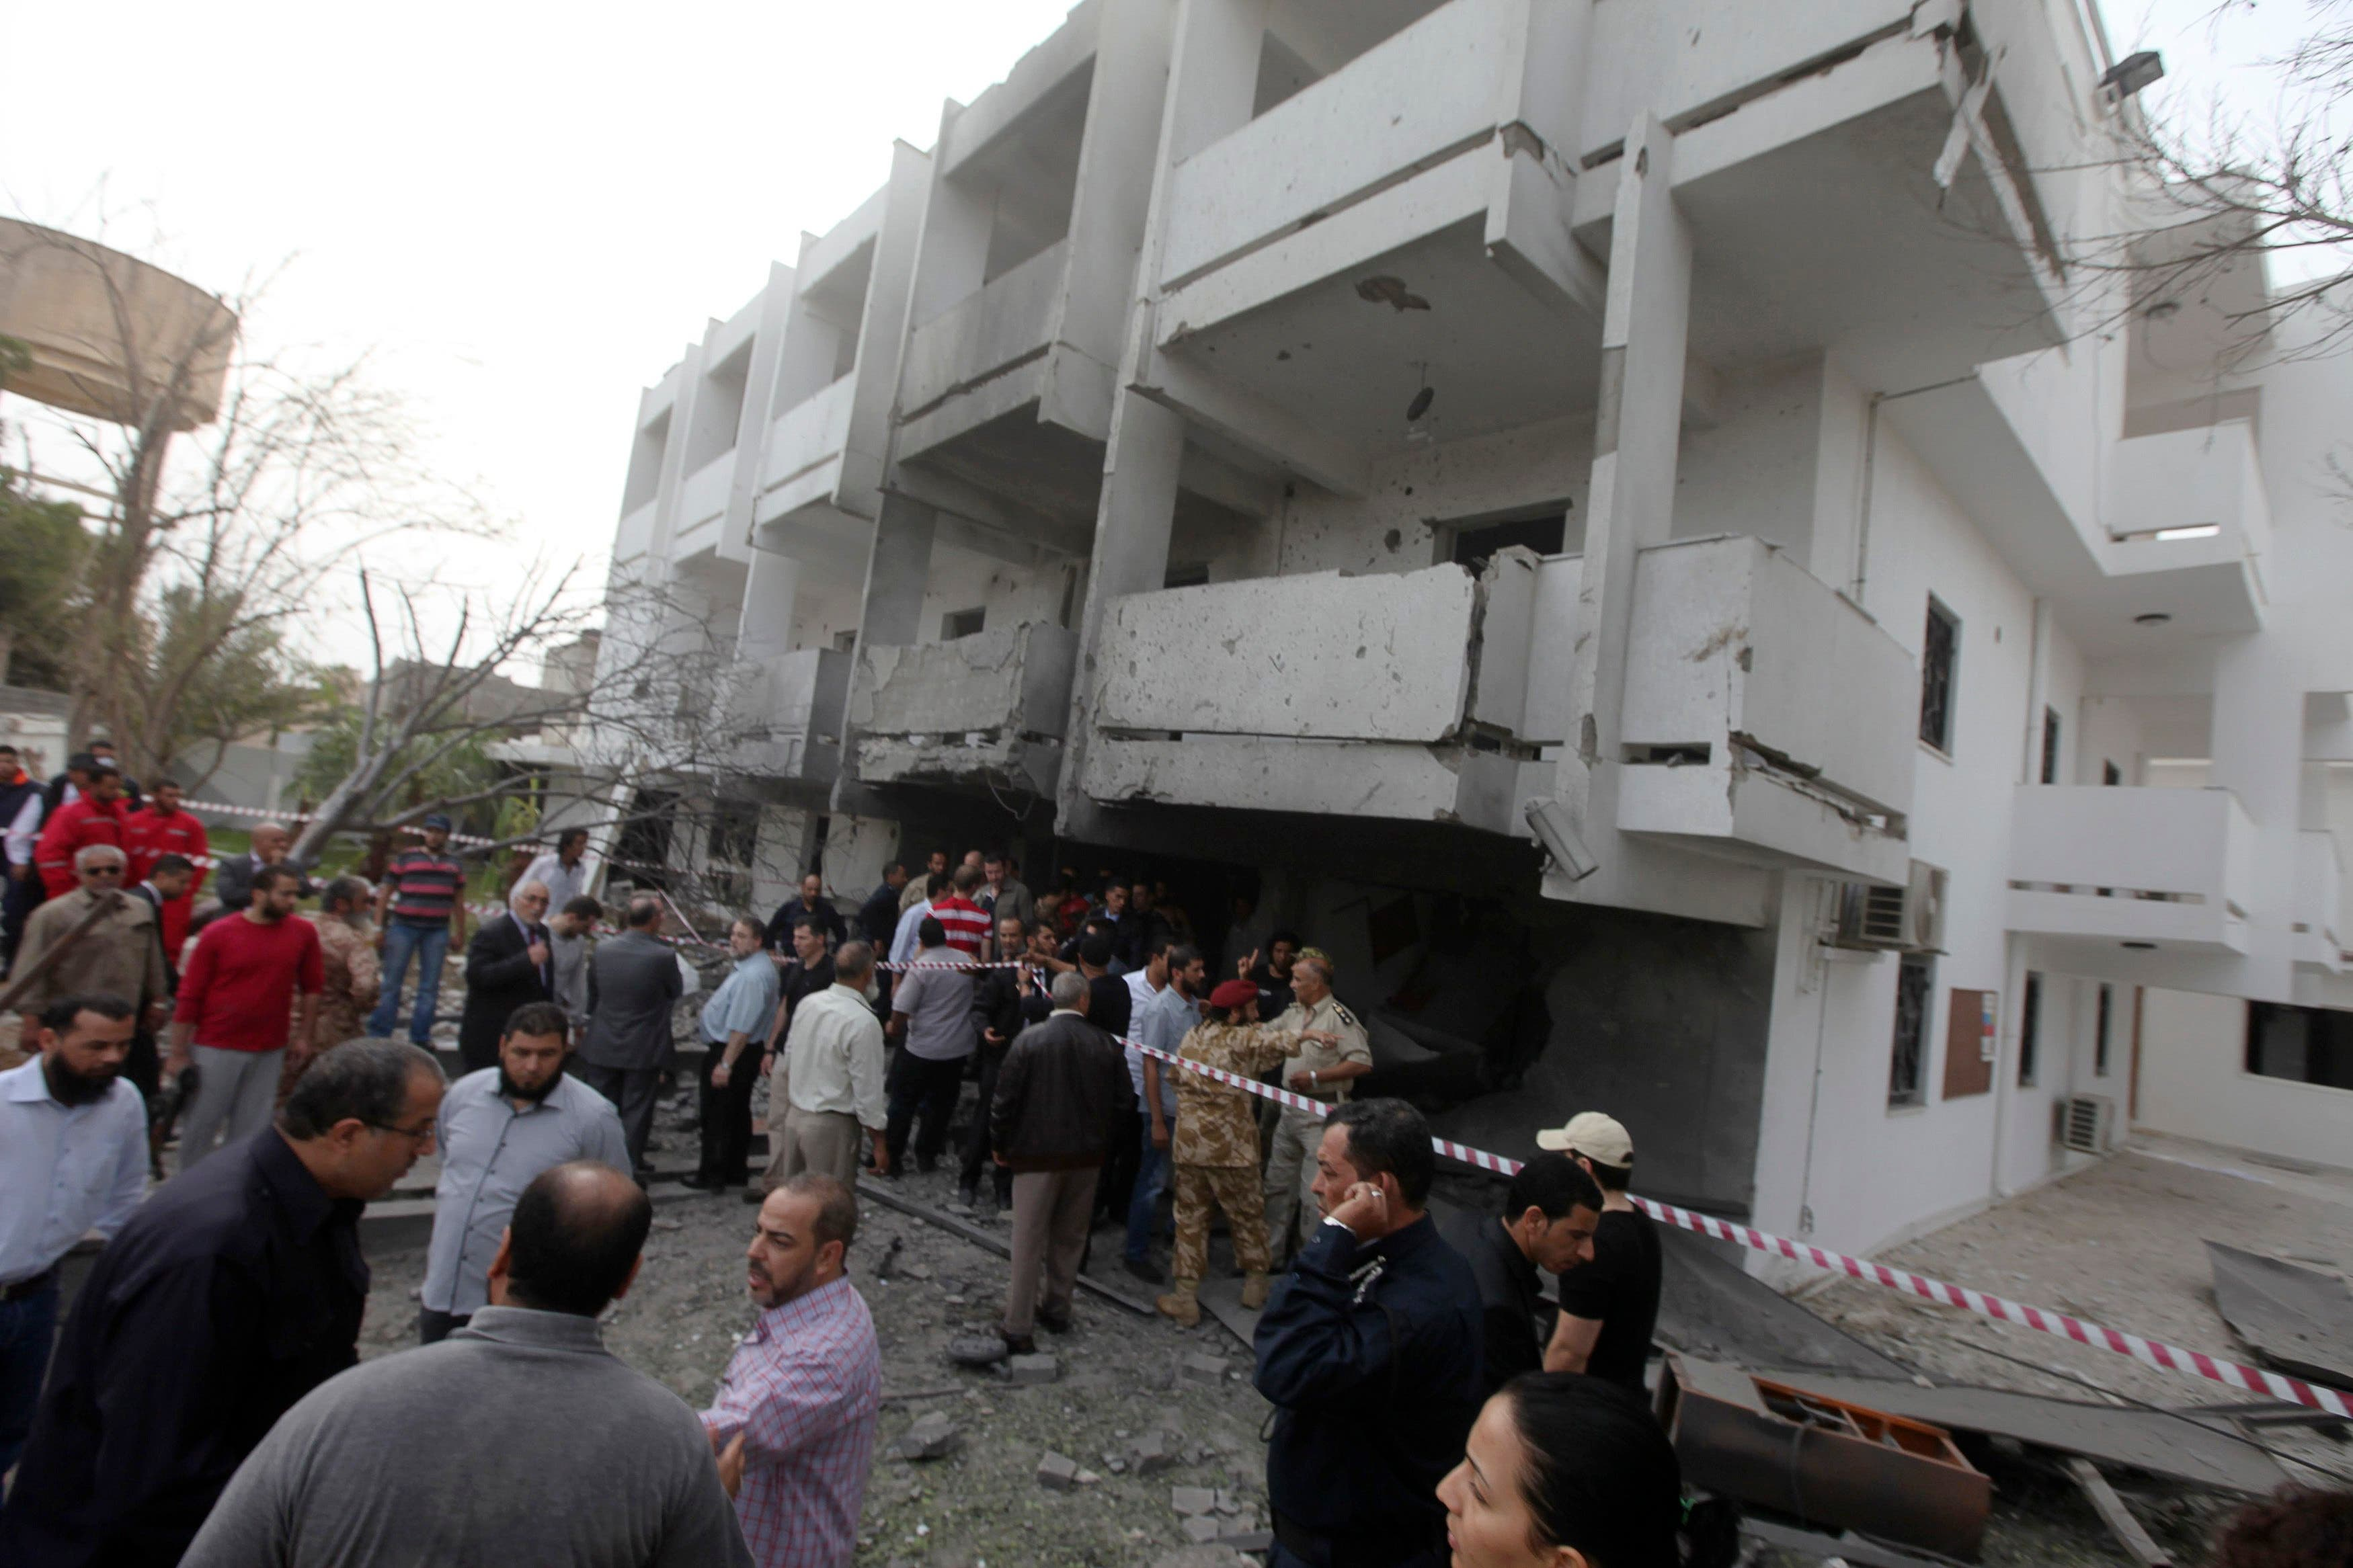 Attack on the French embassy in Tripoli, Libya (Reuters)